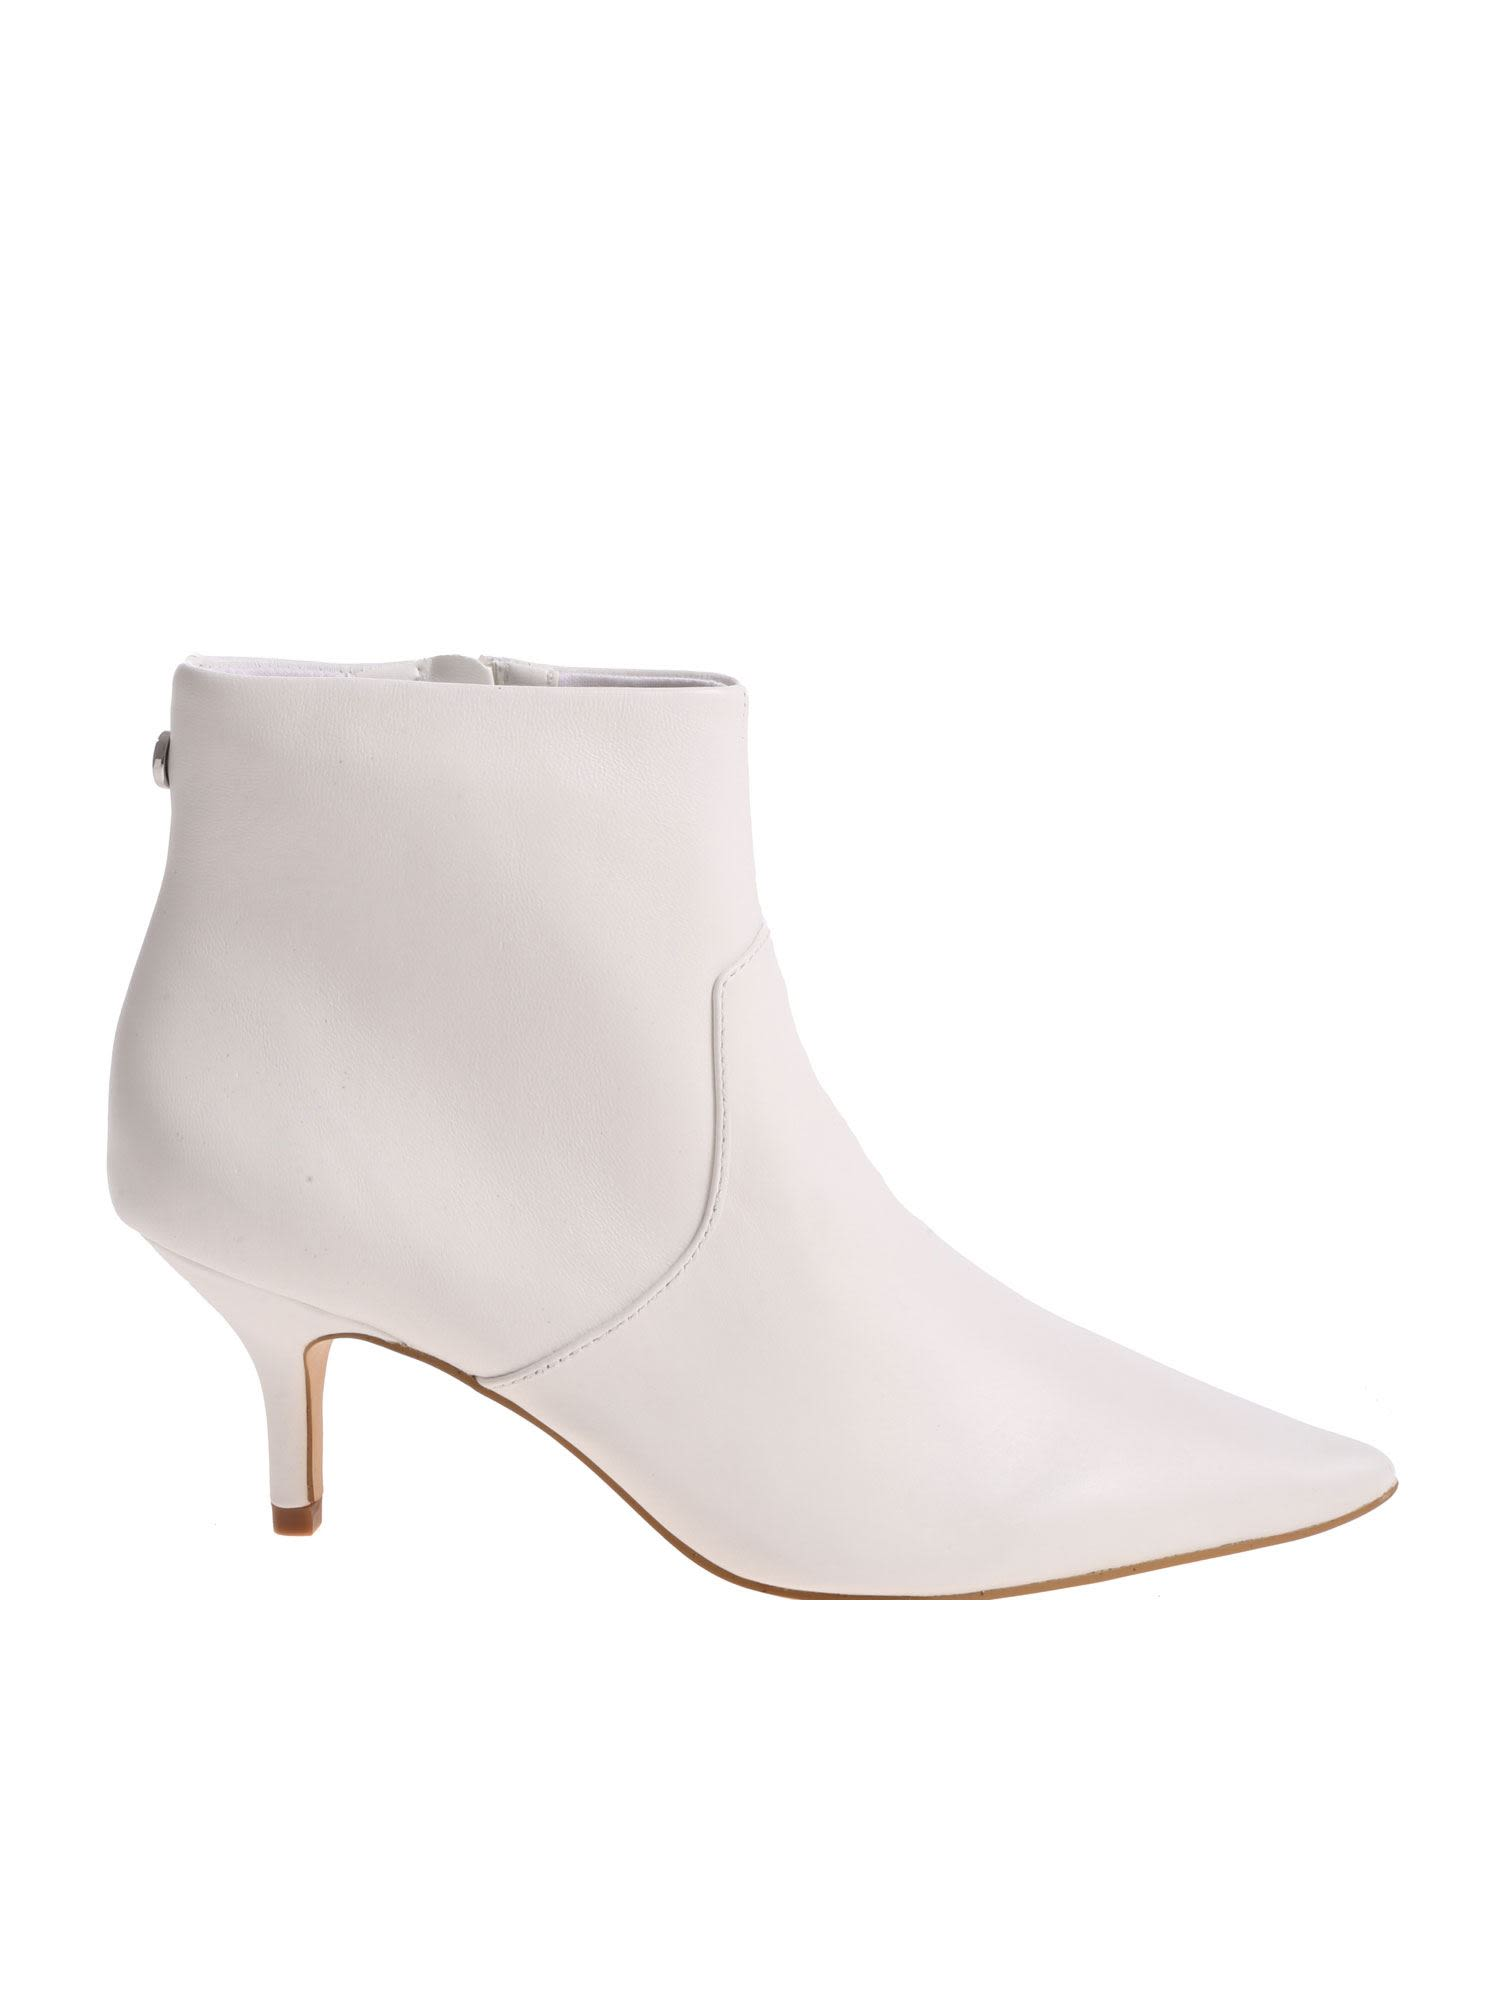 b013f464eb0 Steve Madden Leather Kitten Heel Boot - White